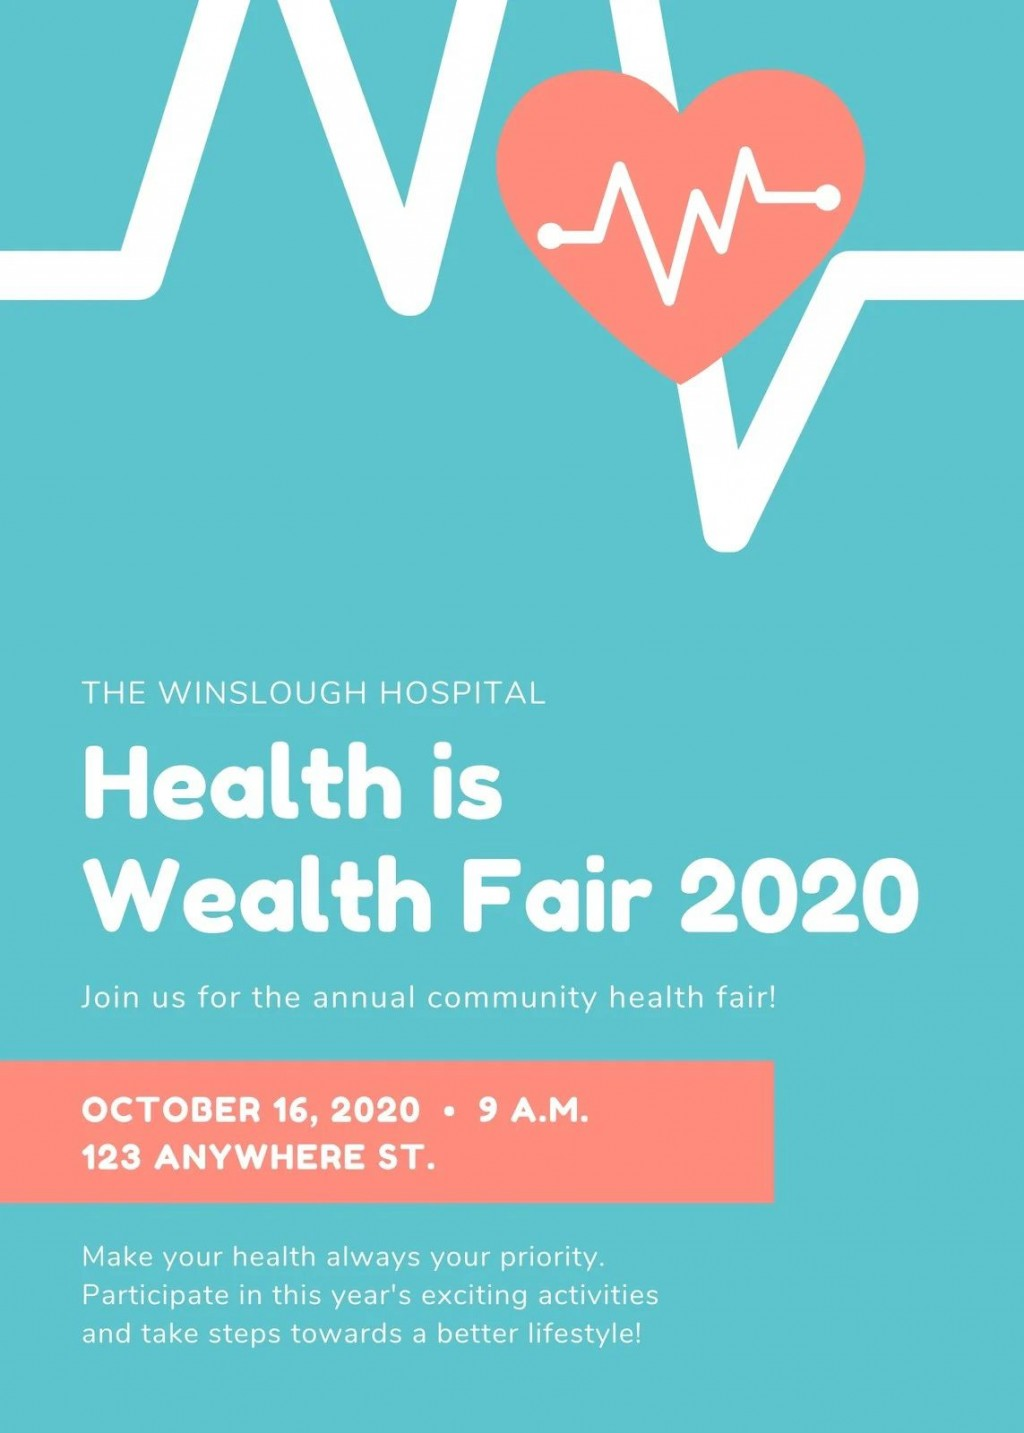 005 Fearsome Health Fair Flyer Template Picture  And Wellnes WordLarge